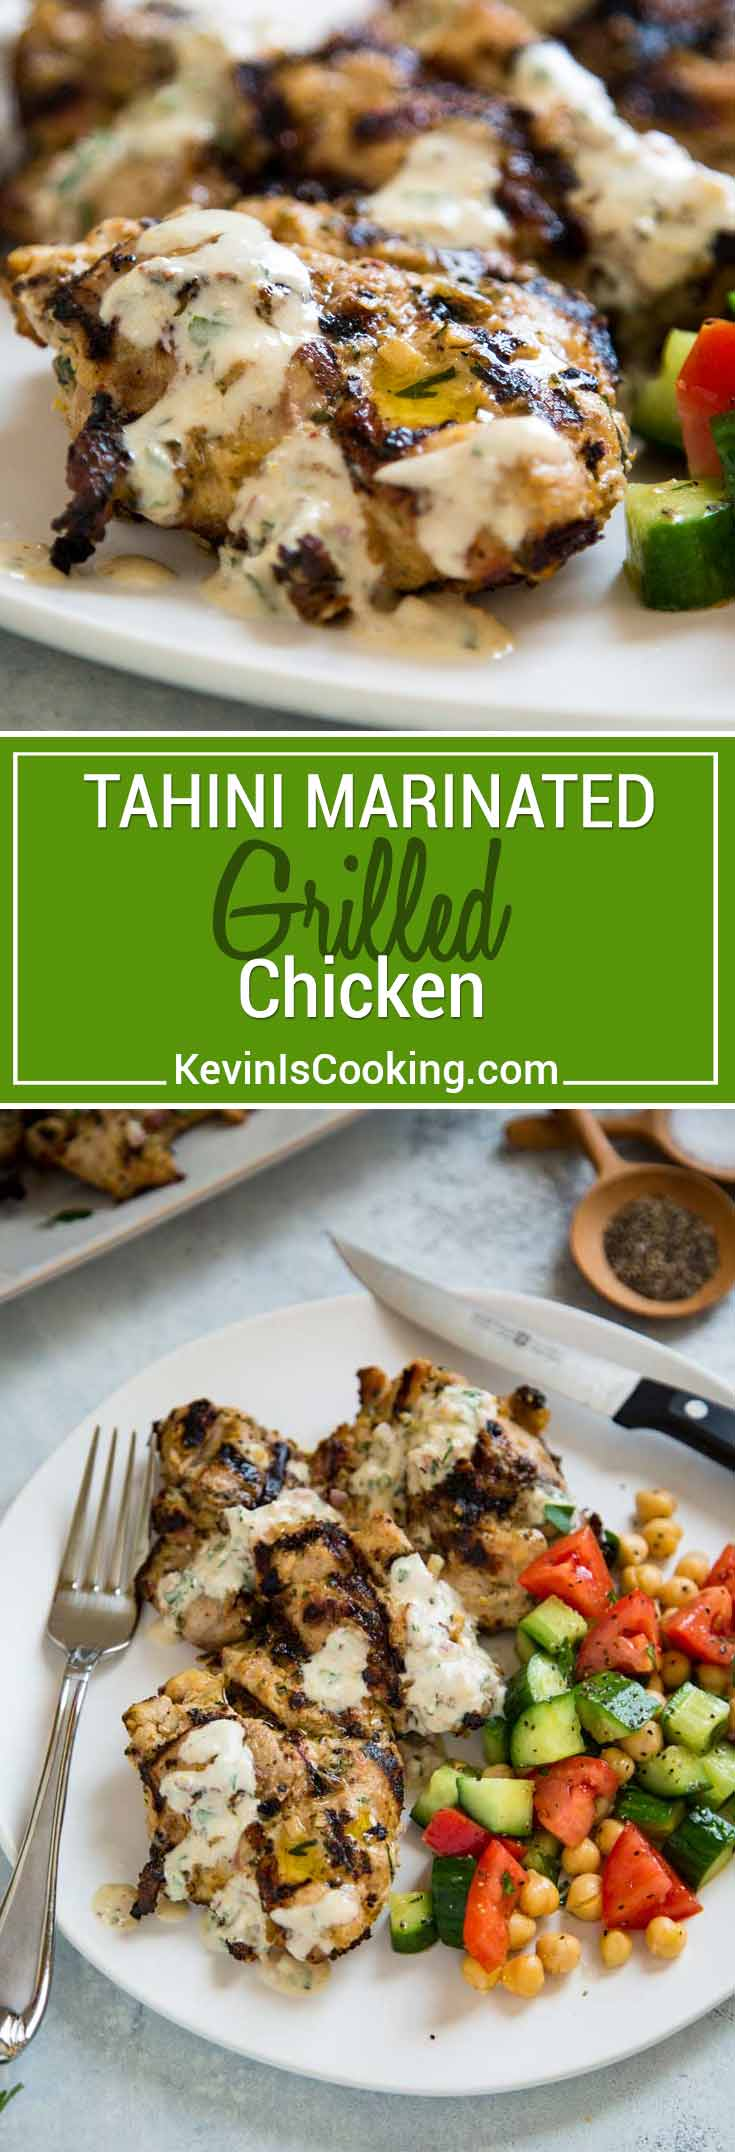 Tahini Marinated Grilled Chicken is not over powering in sesame flavor, but the tahini adds an almost tenderizing quality to the chicken and amazing flavor!